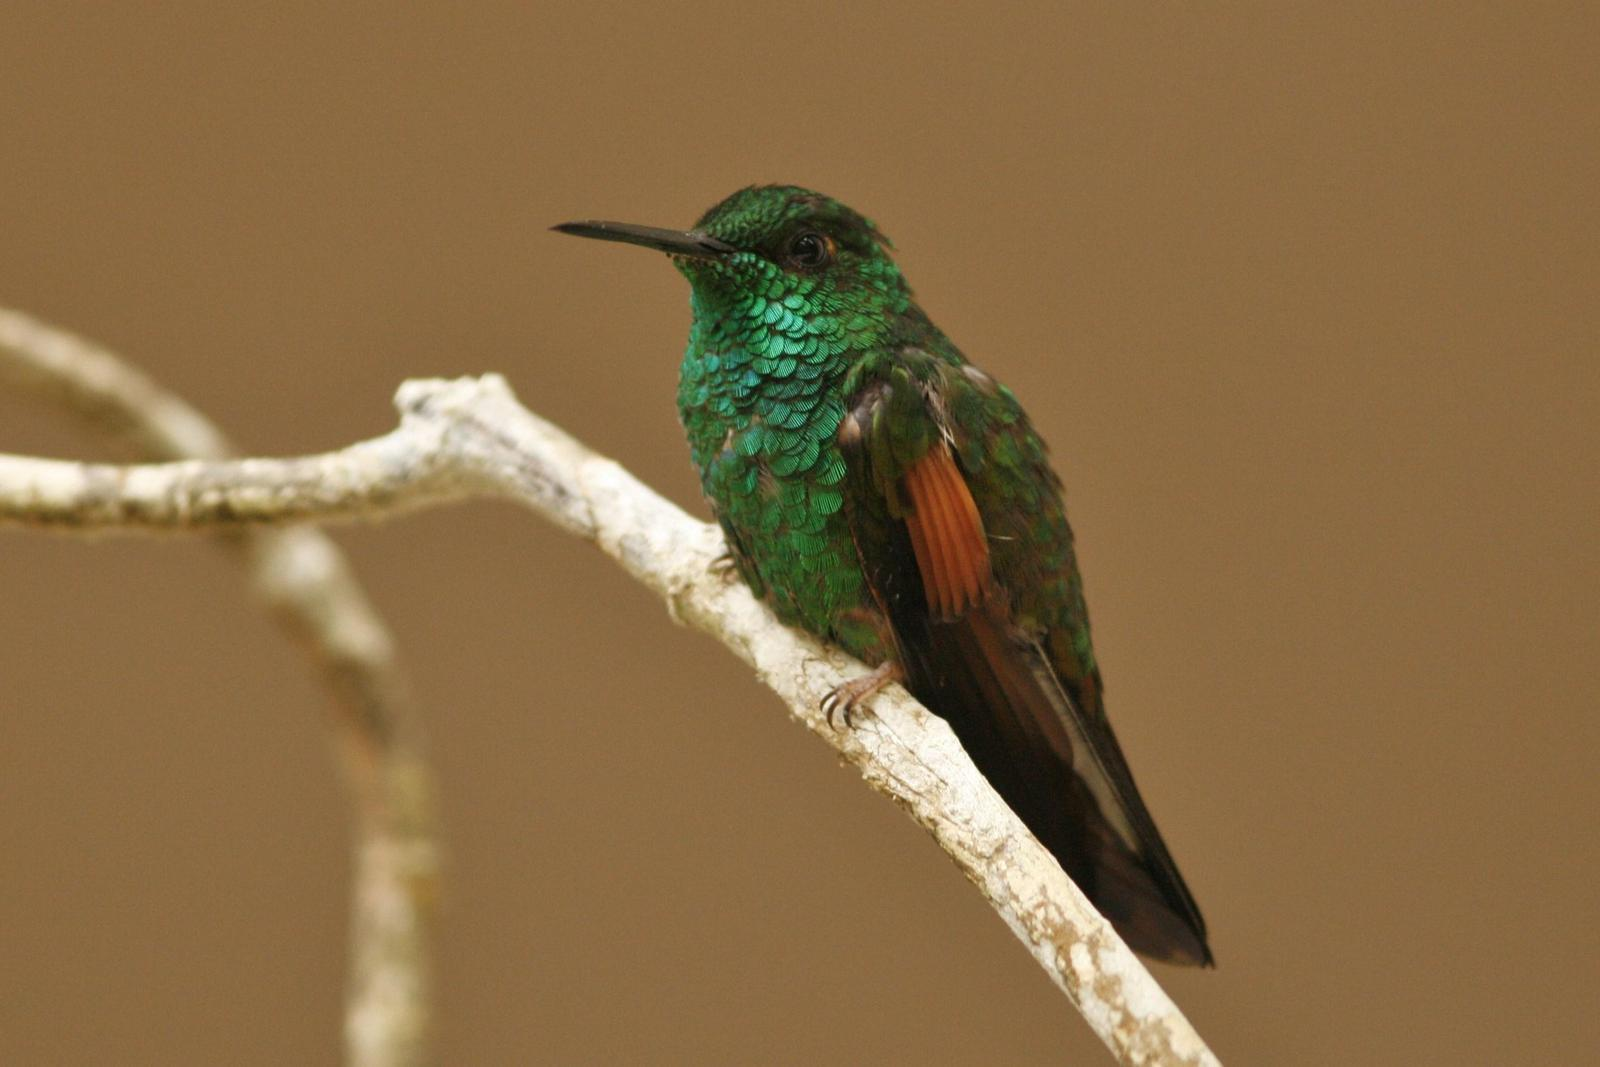 Stripe-tailed Hummingbird Photo by Oscar Johnson